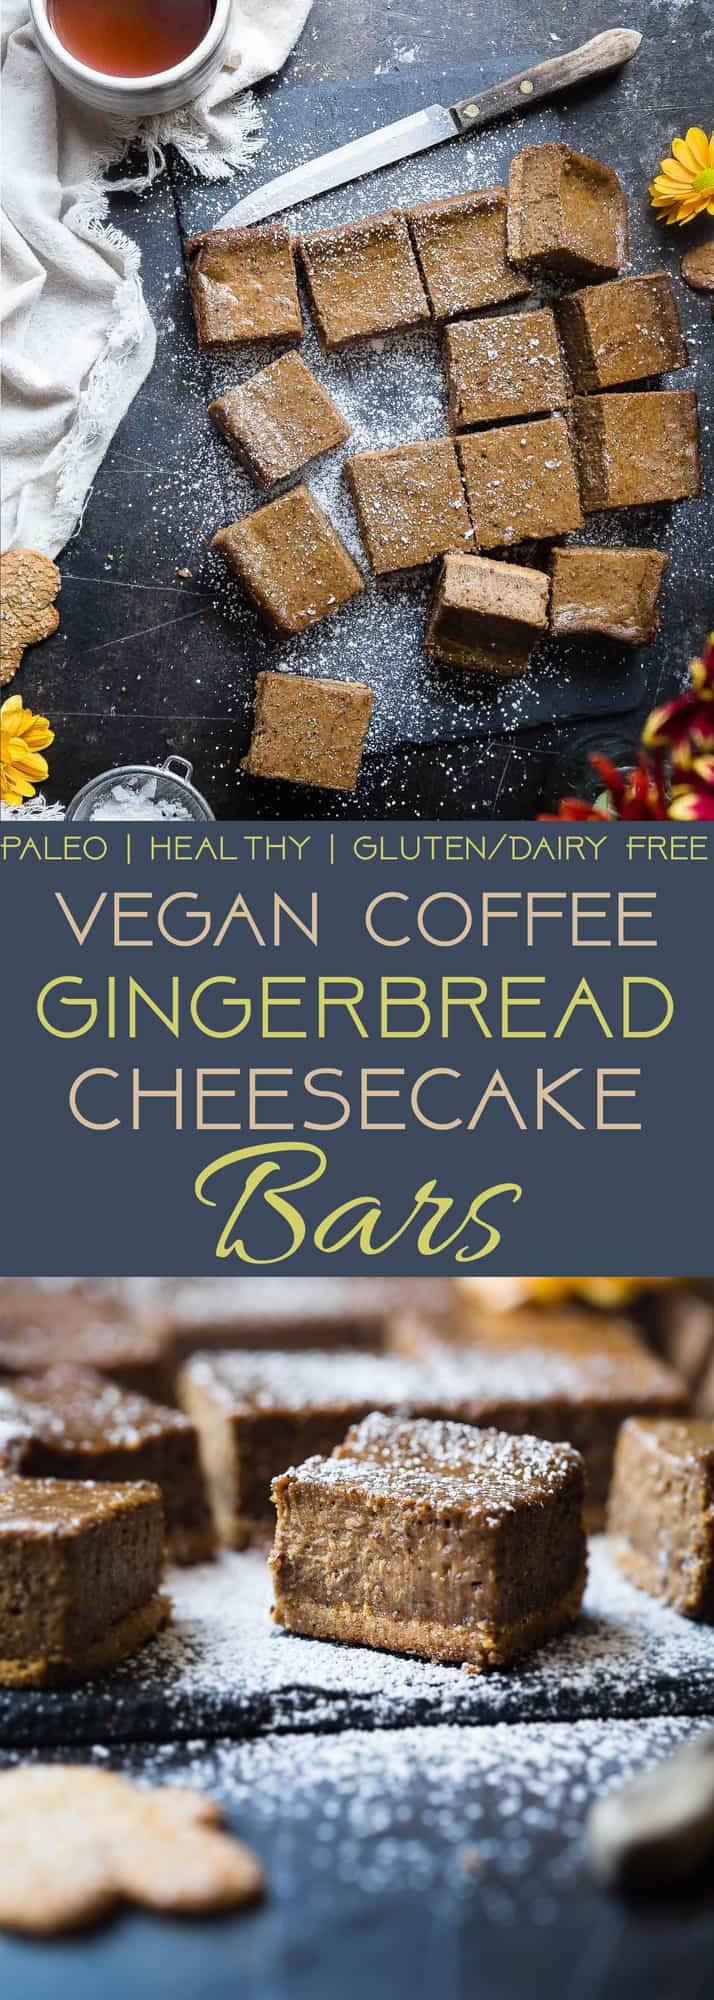 Dairy Free Vegan Gingerbread Cheesecake Bars - These little bites of gingerbread blissare SO creamy and spicy-sweet! A paleo friendly, healthy and gluten free dessert for the holidays that you will never believe is dairy and egg free! | Foodfaithfitness.com | @FoodFaithFit | gluten free gingerbread cheesecake. vegan cheesecake. healthy cheesecake bars. healthy christmas desserts. paleo cheesecake.